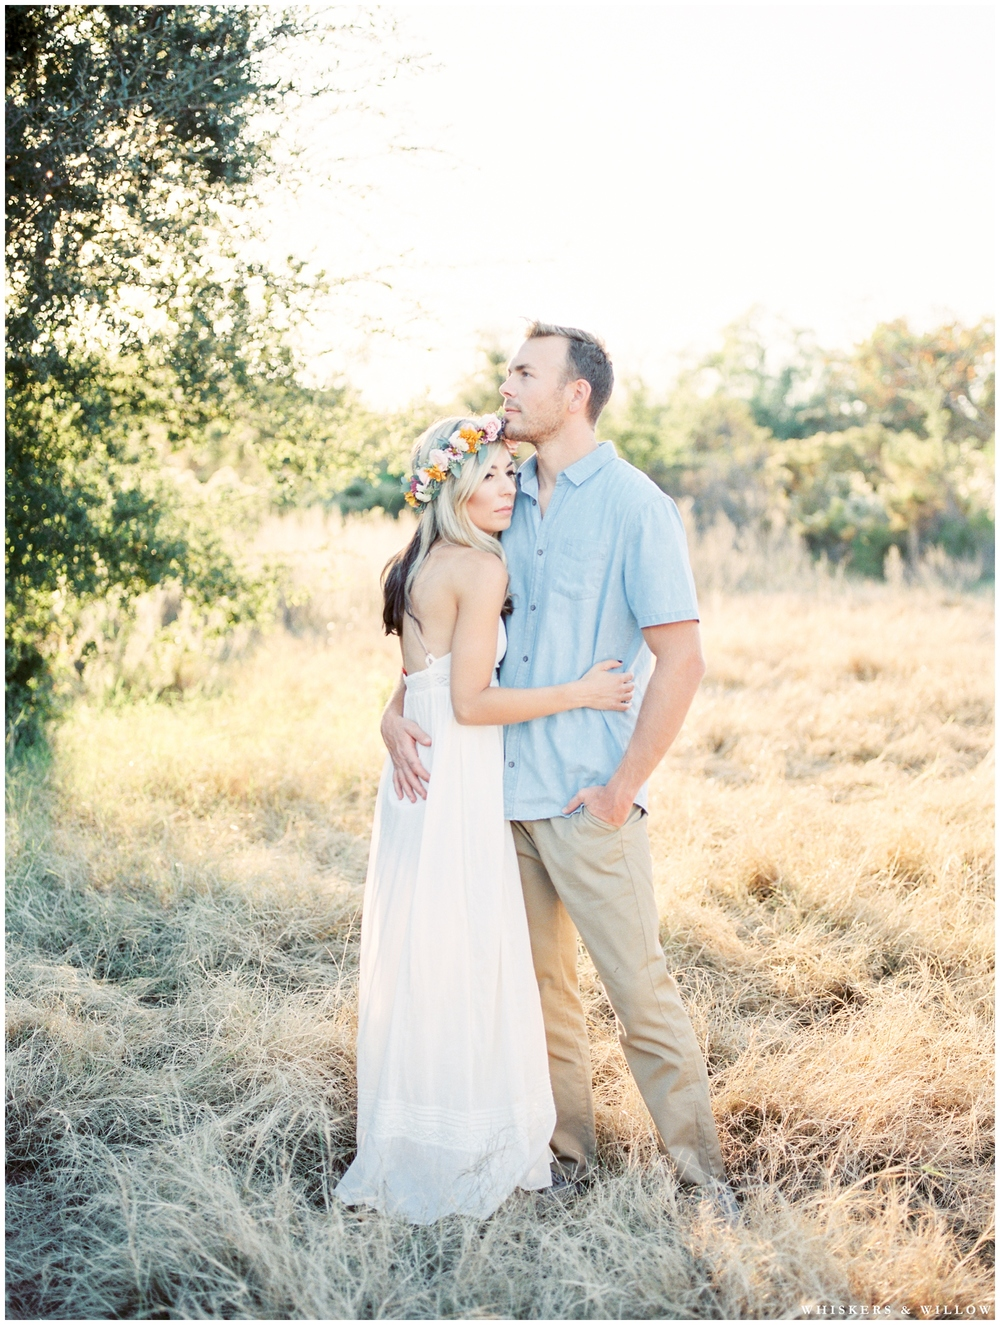 San Diego Fine Art Wedding Photography | Whiskers and Willow Photography